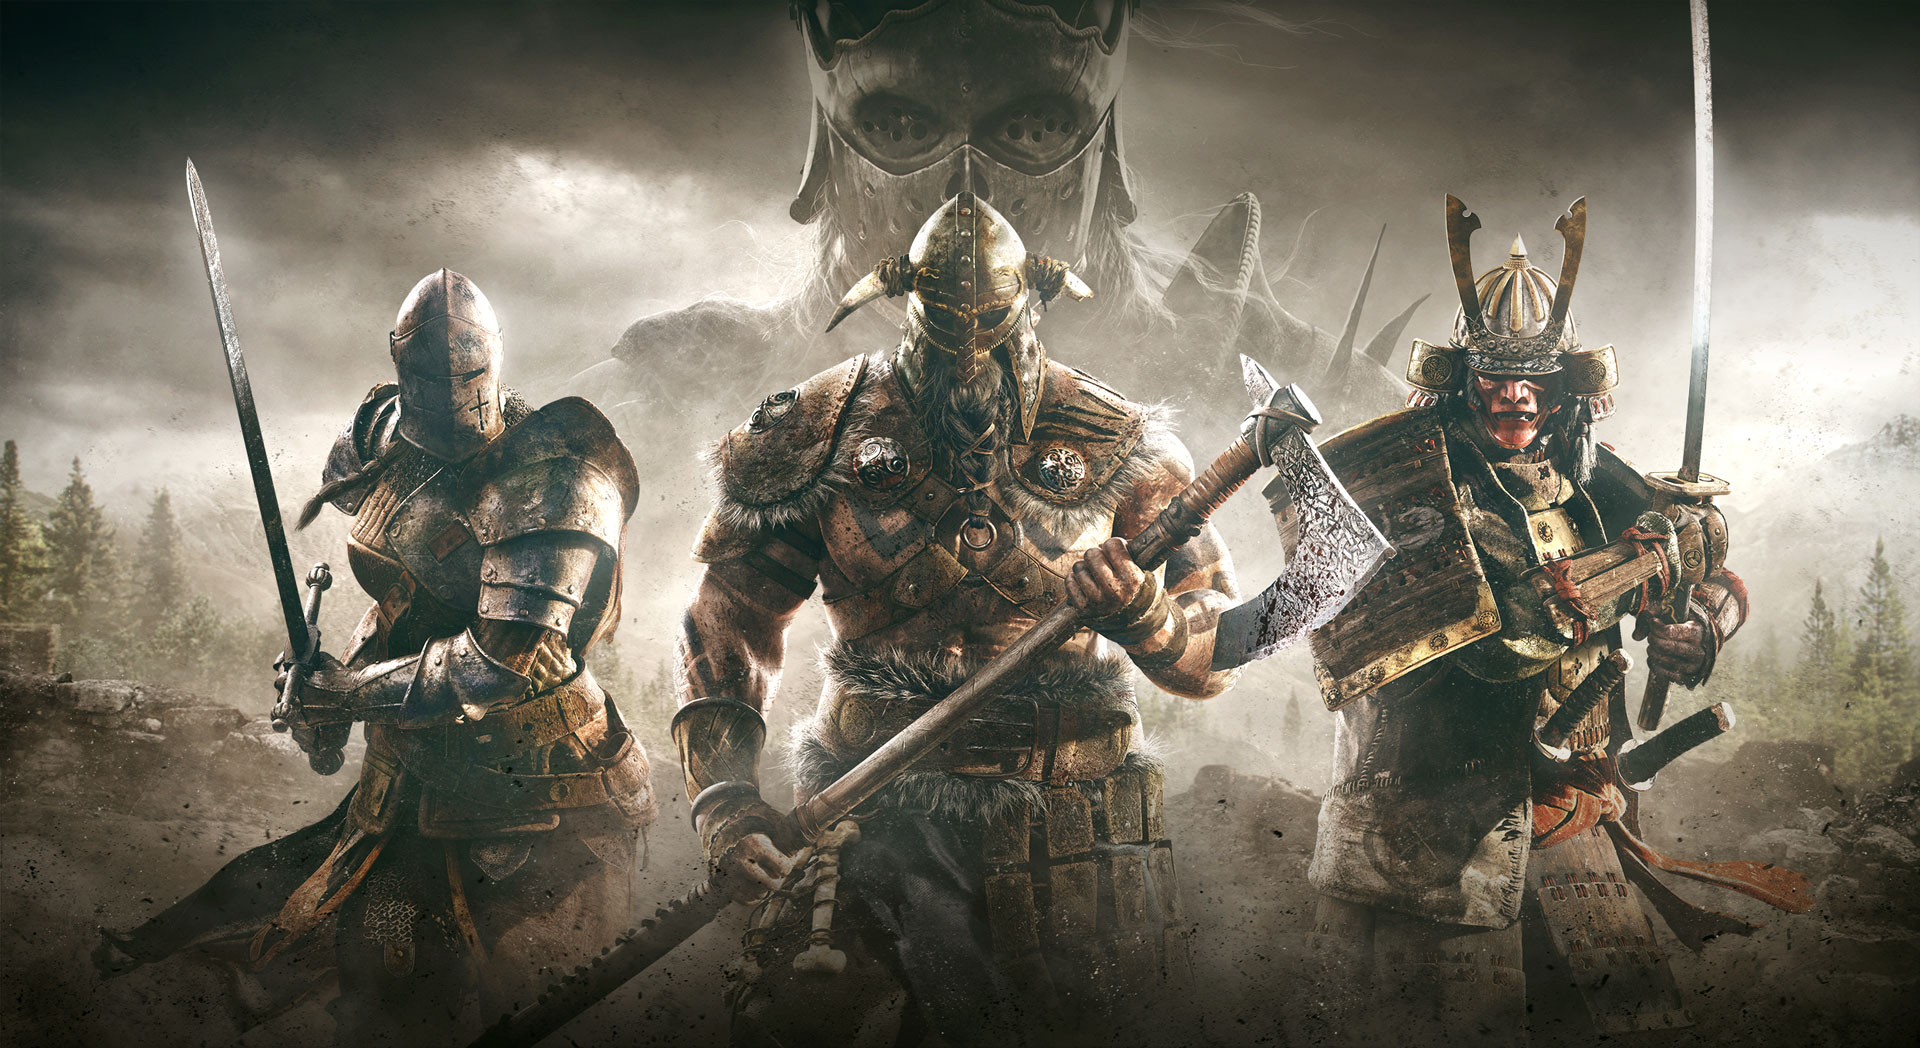 The Vanguards of For Honor